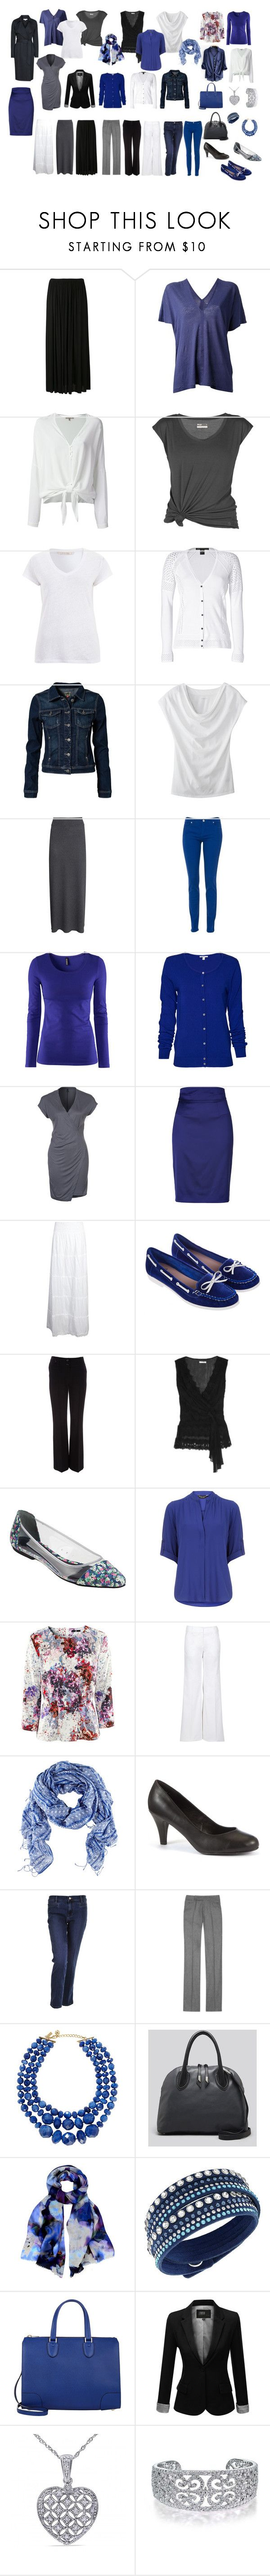 """2015 Business Casual Capsule Wardrobe"" by regmize ❤ liked on Polyvore featuring Beautiful People, Majestic Filatures, Patrizia Pepe, Lija, Nougat, Marc by Marc Jacobs, ONLY, Merona, H&M and Louche"